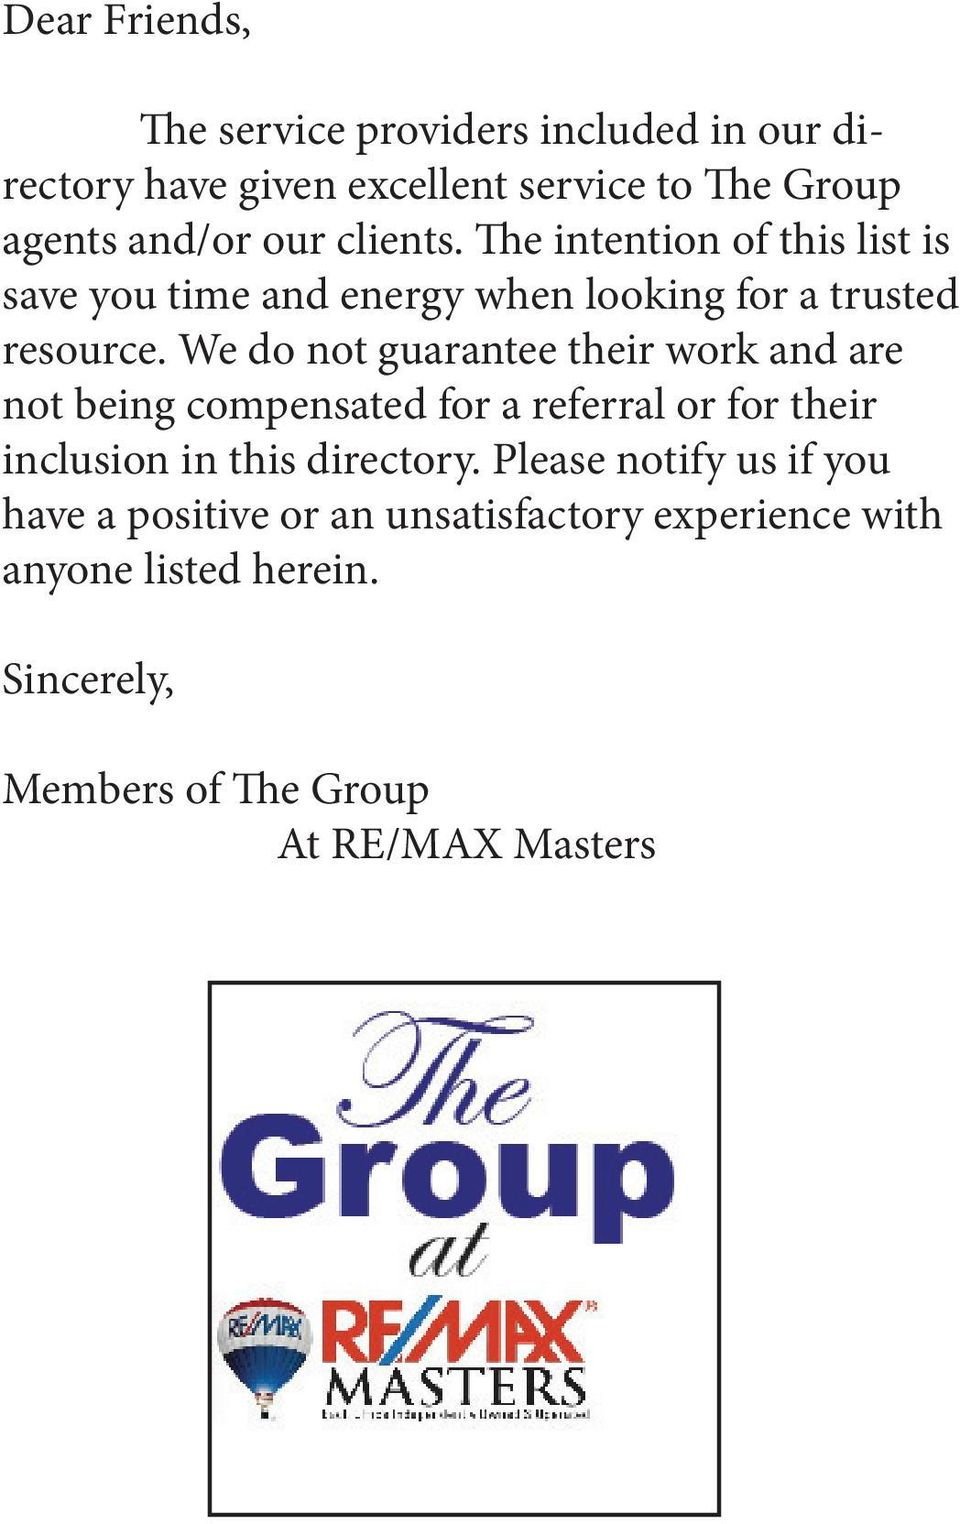 We do not guarantee their work and are not being compensated for a referral or for their inclusion in this directory.